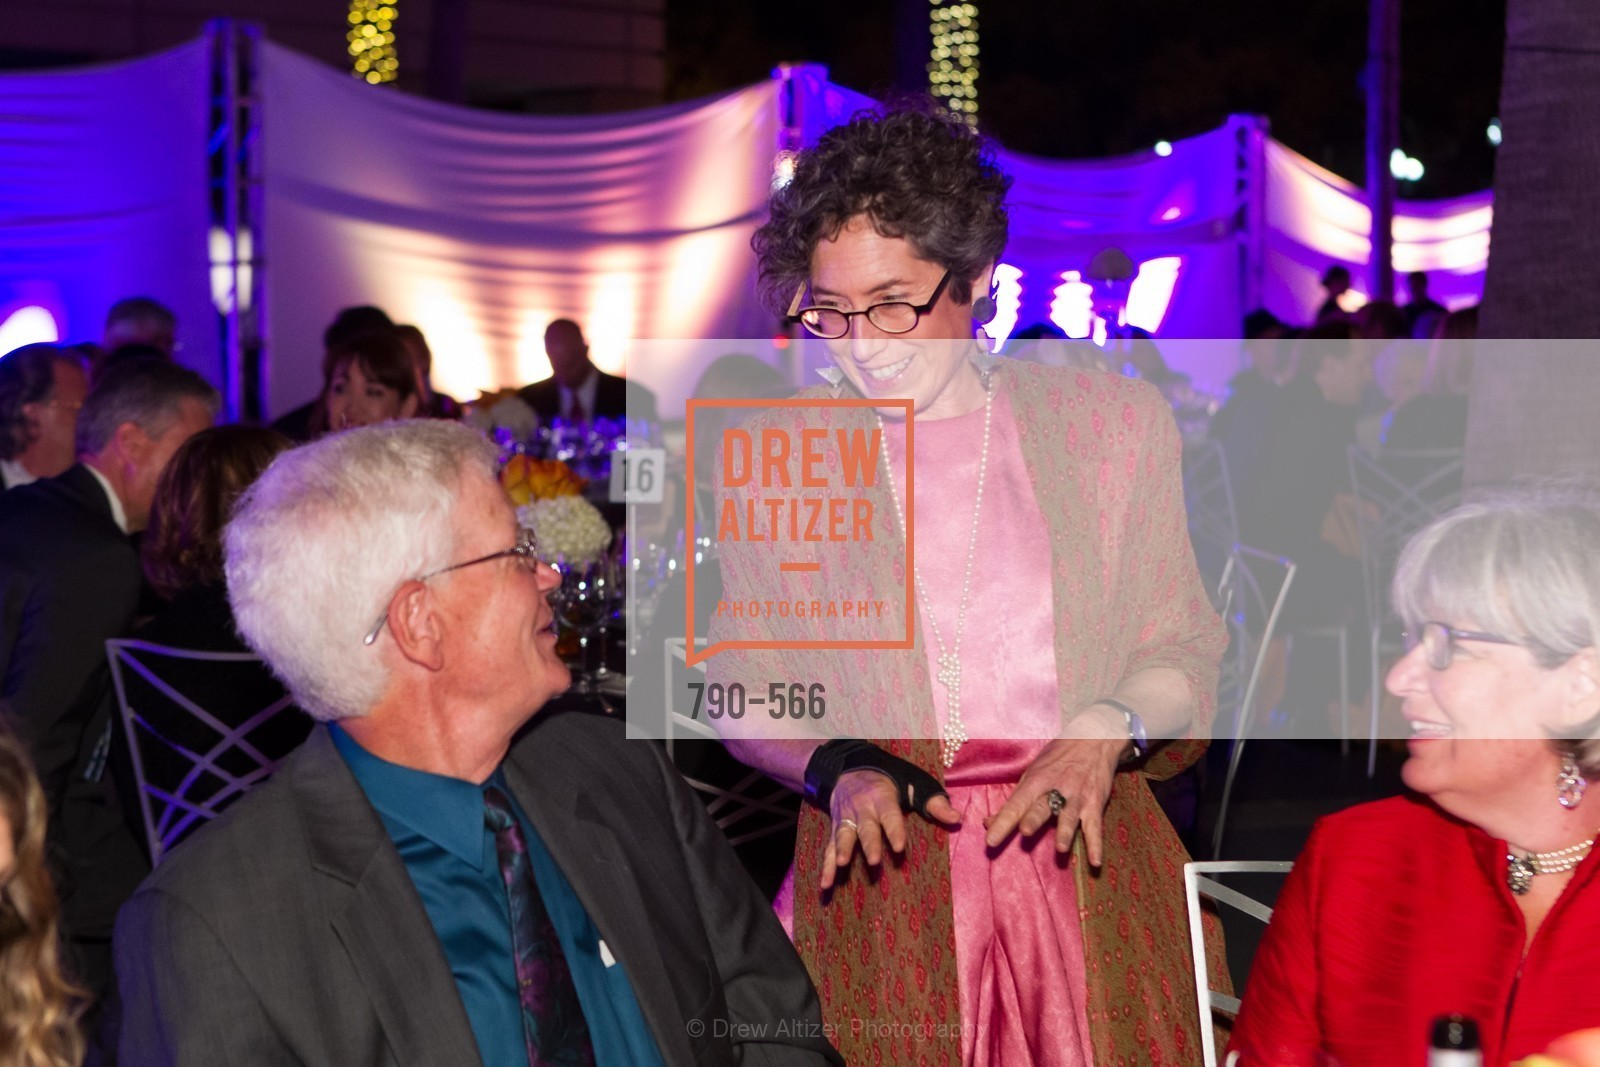 Susan Krane, SAN JOSE MUSEUM OF ART'S Spectrum Gala - 45th Anniversary, US, September 13th, 2014,Drew Altizer, Drew Altizer Photography, full-service agency, private events, San Francisco photographer, photographer california